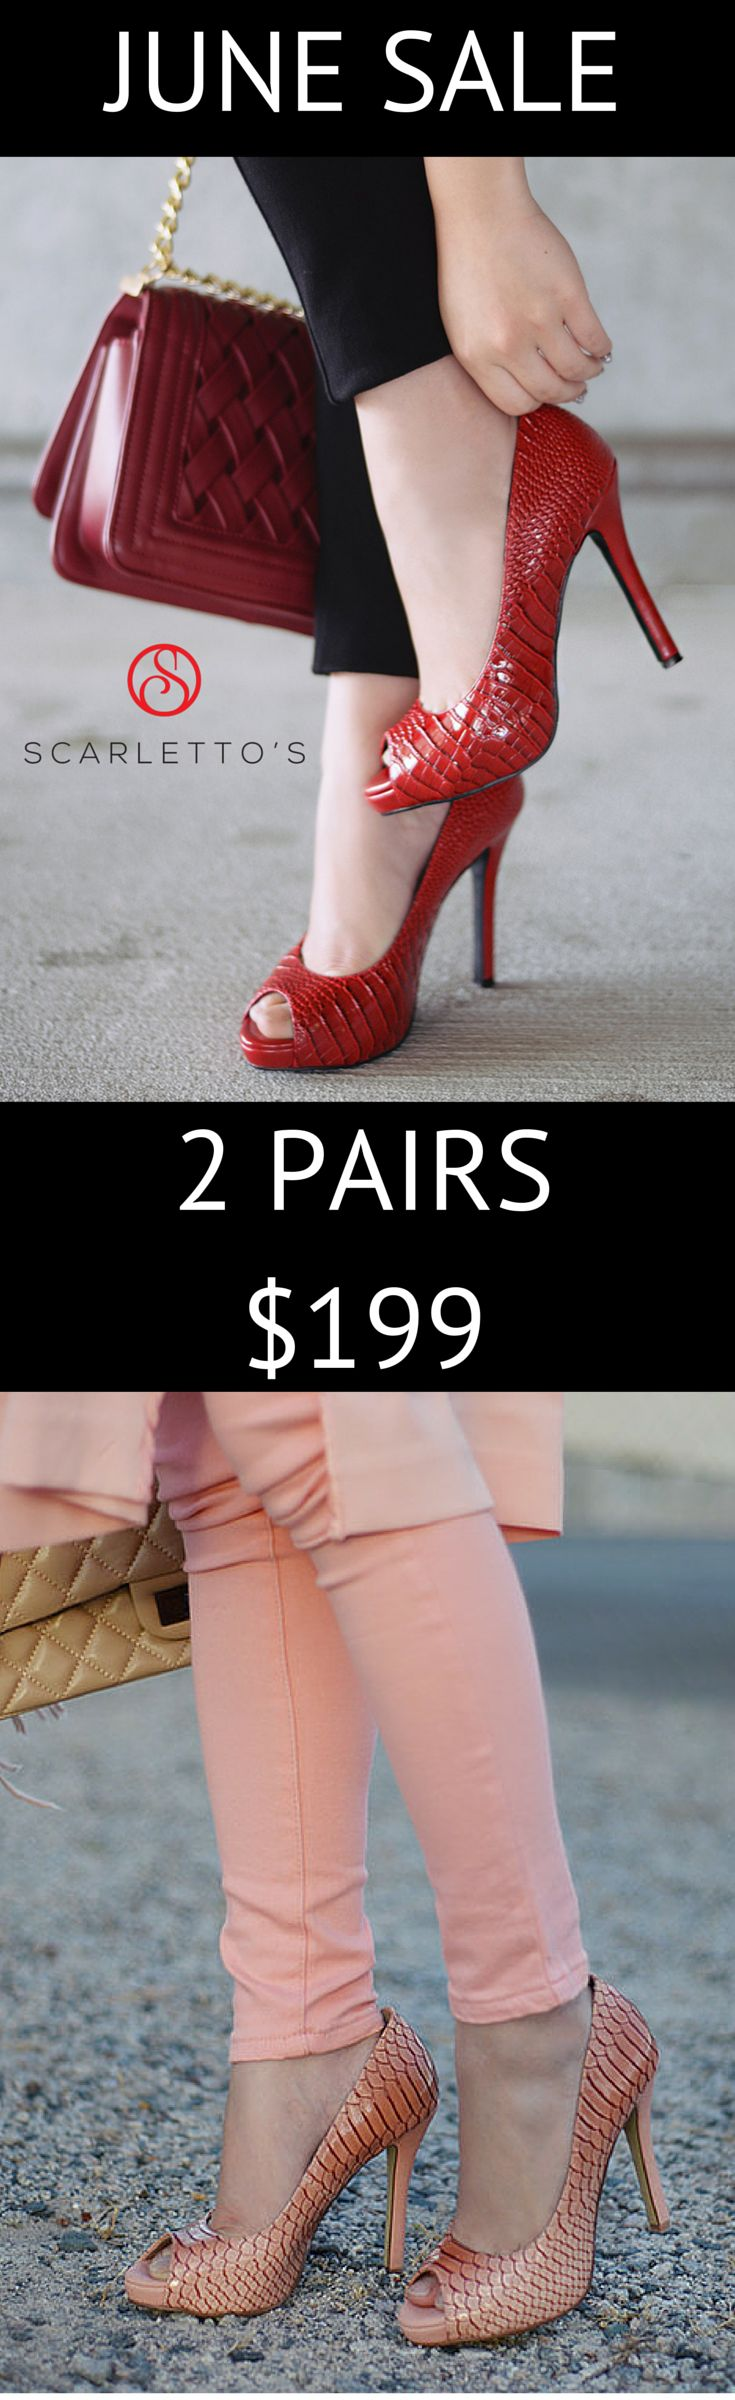 To make room for new stock we are having a massive warehouse clearance sale and are pleased to offer you any 2 pairs for just $199.  Choose two pairs of heels, two pairs of flats or mix it up and grab one of each.  This sale is running for the month of June or until stocks run out.   * Remember, as all of our materials are hand sourced, once they are gone they are gone forever, there are no re-runs or restocking, so grab your favourites today while stocks last…